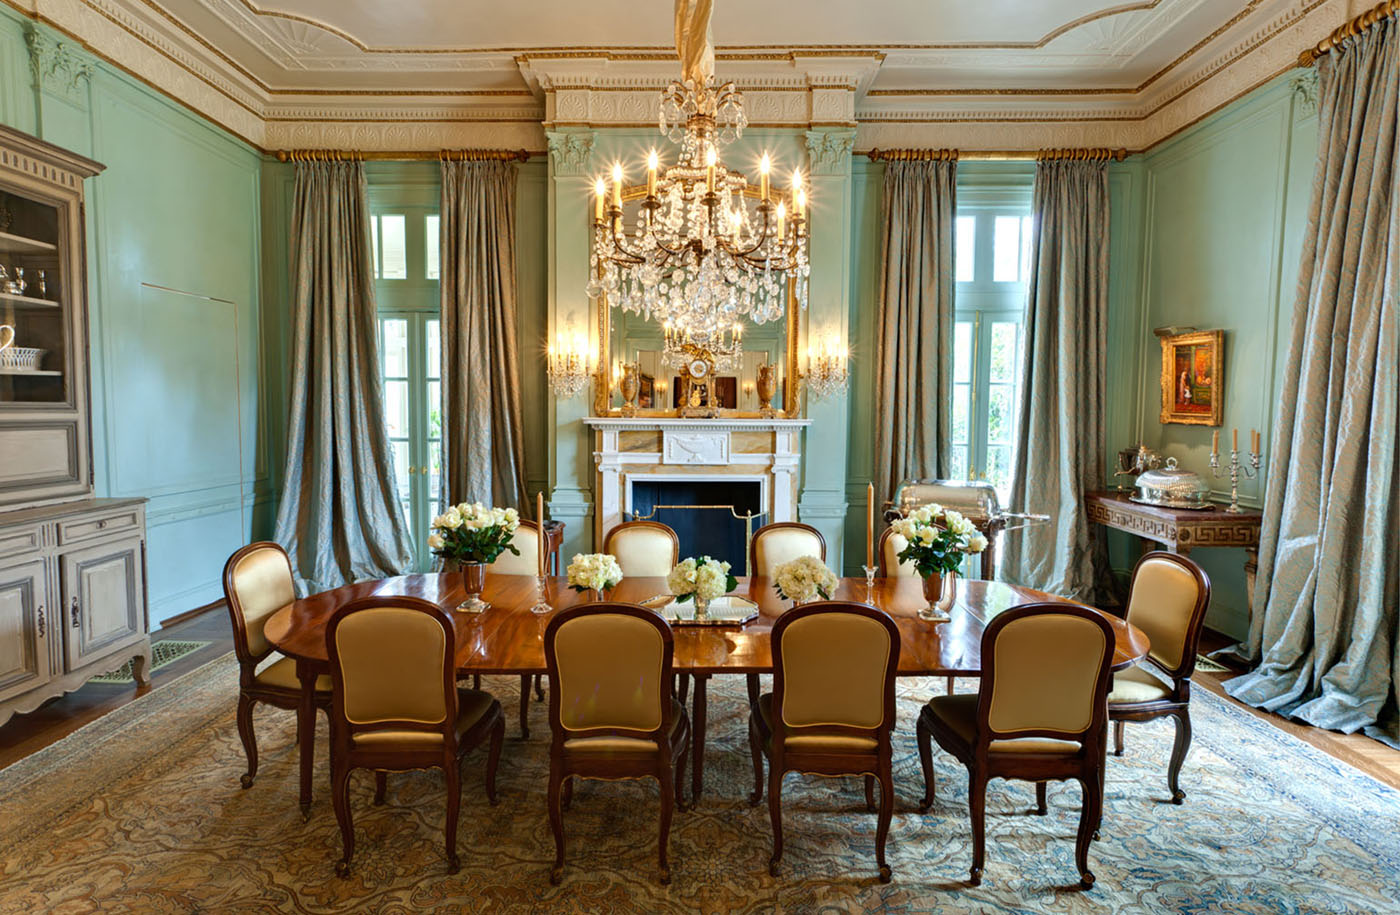 An elegant Robin's egg blue dining room with floor to ceiling taupe drapes, a crystal chandelier an antique rug in muted colors featuring an oriental rug pattern